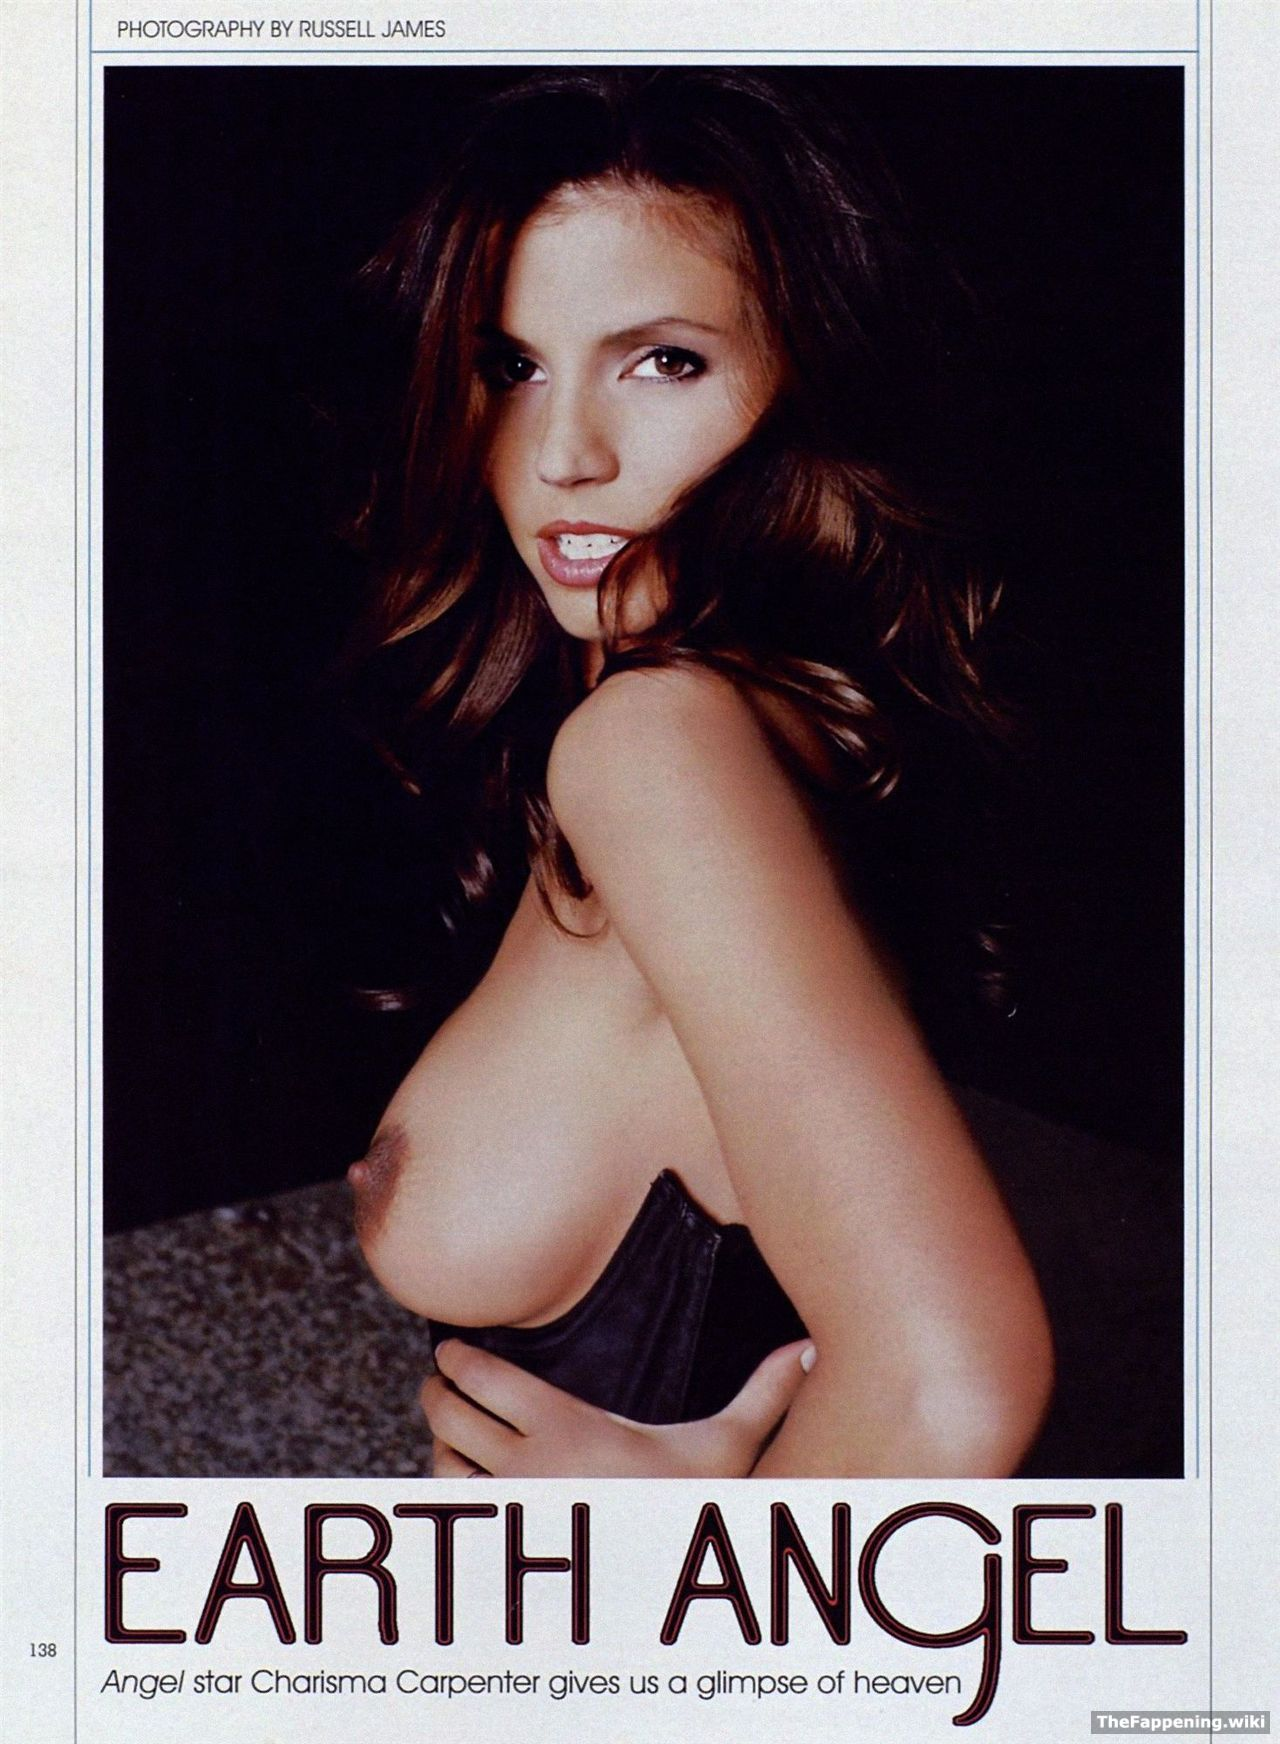 Opinion you boob side charisma carpenter for support. opinion